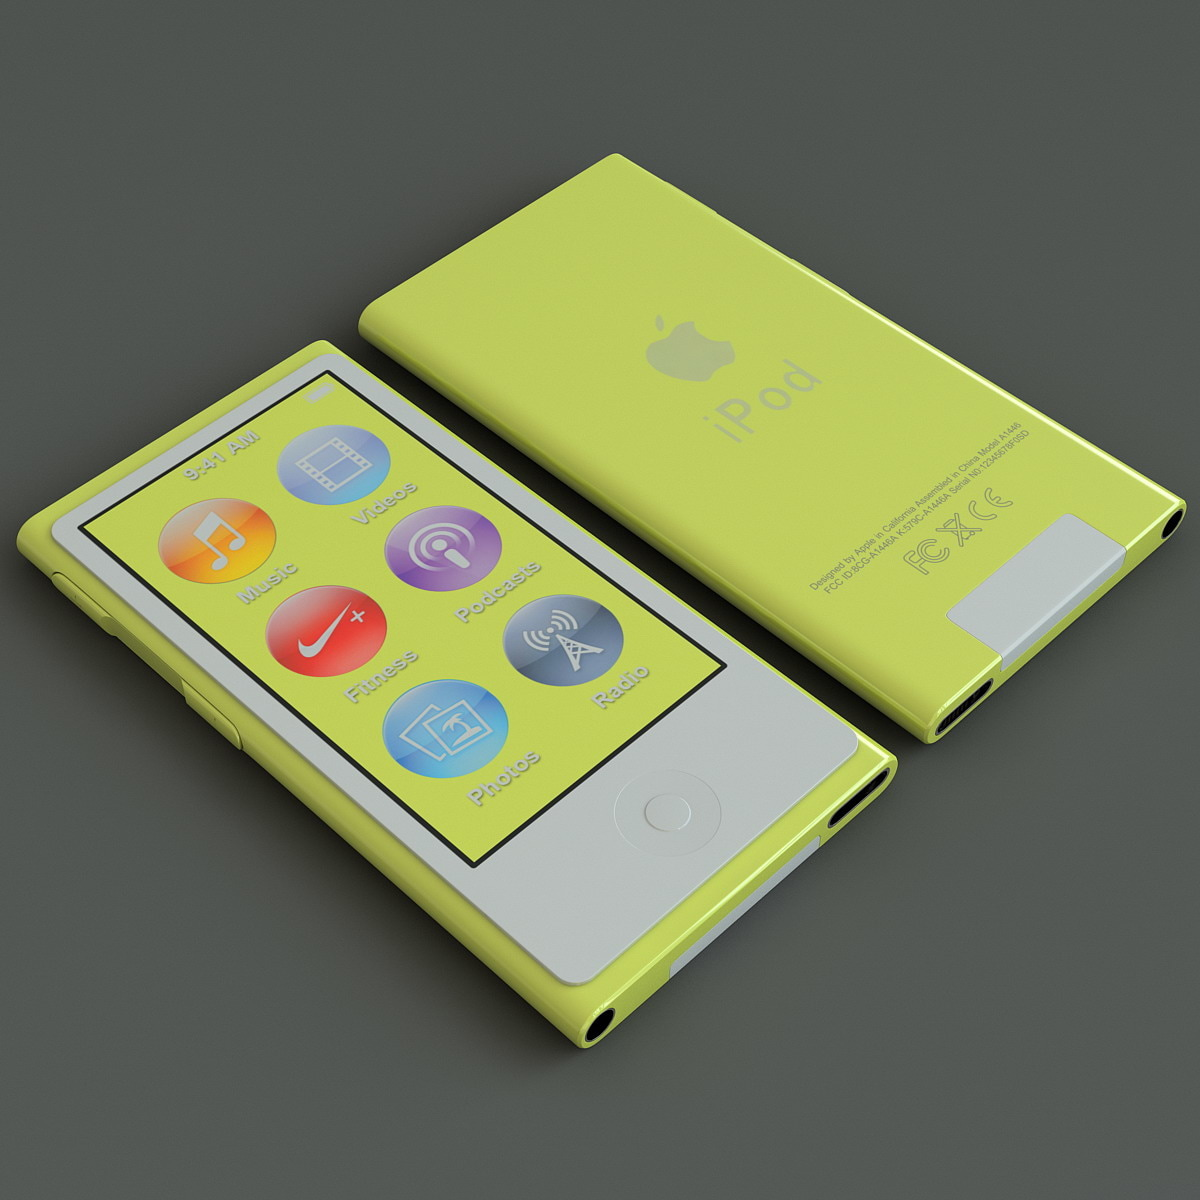 Ipod_Nano_Generation_7th_Yellow_004.jpg